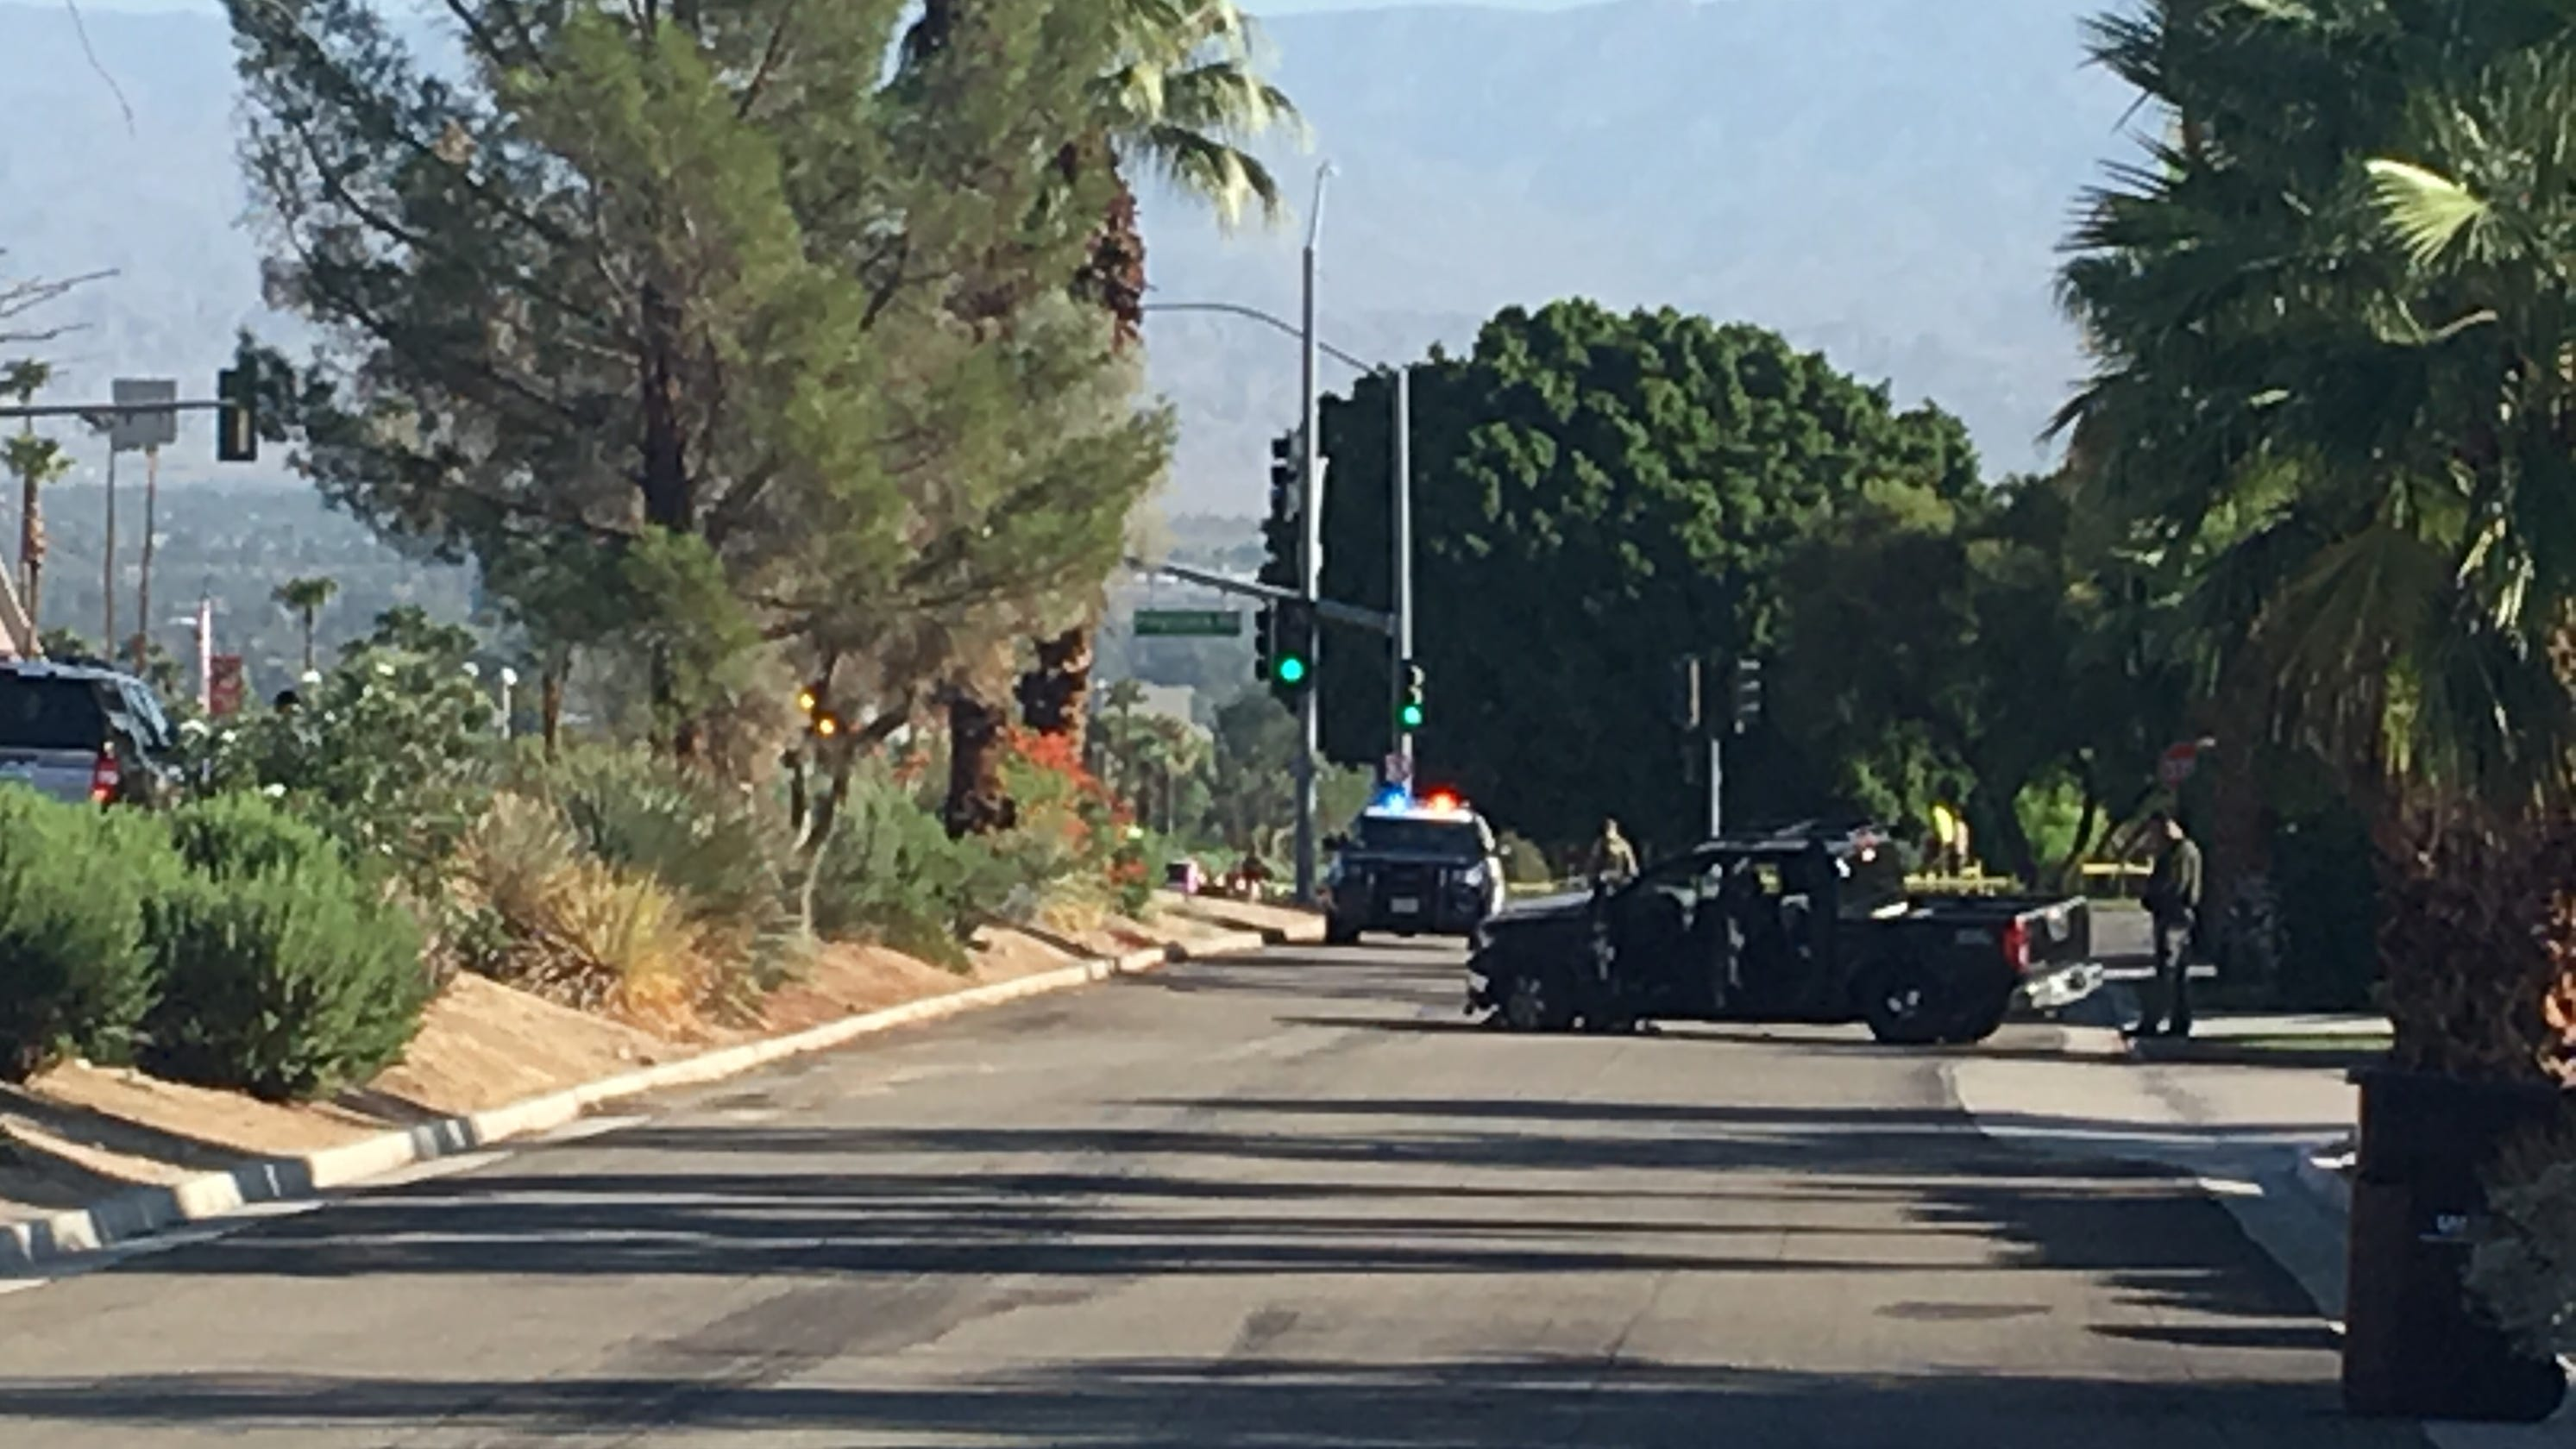 65-year-old Palm Desert woman who died after she was struck